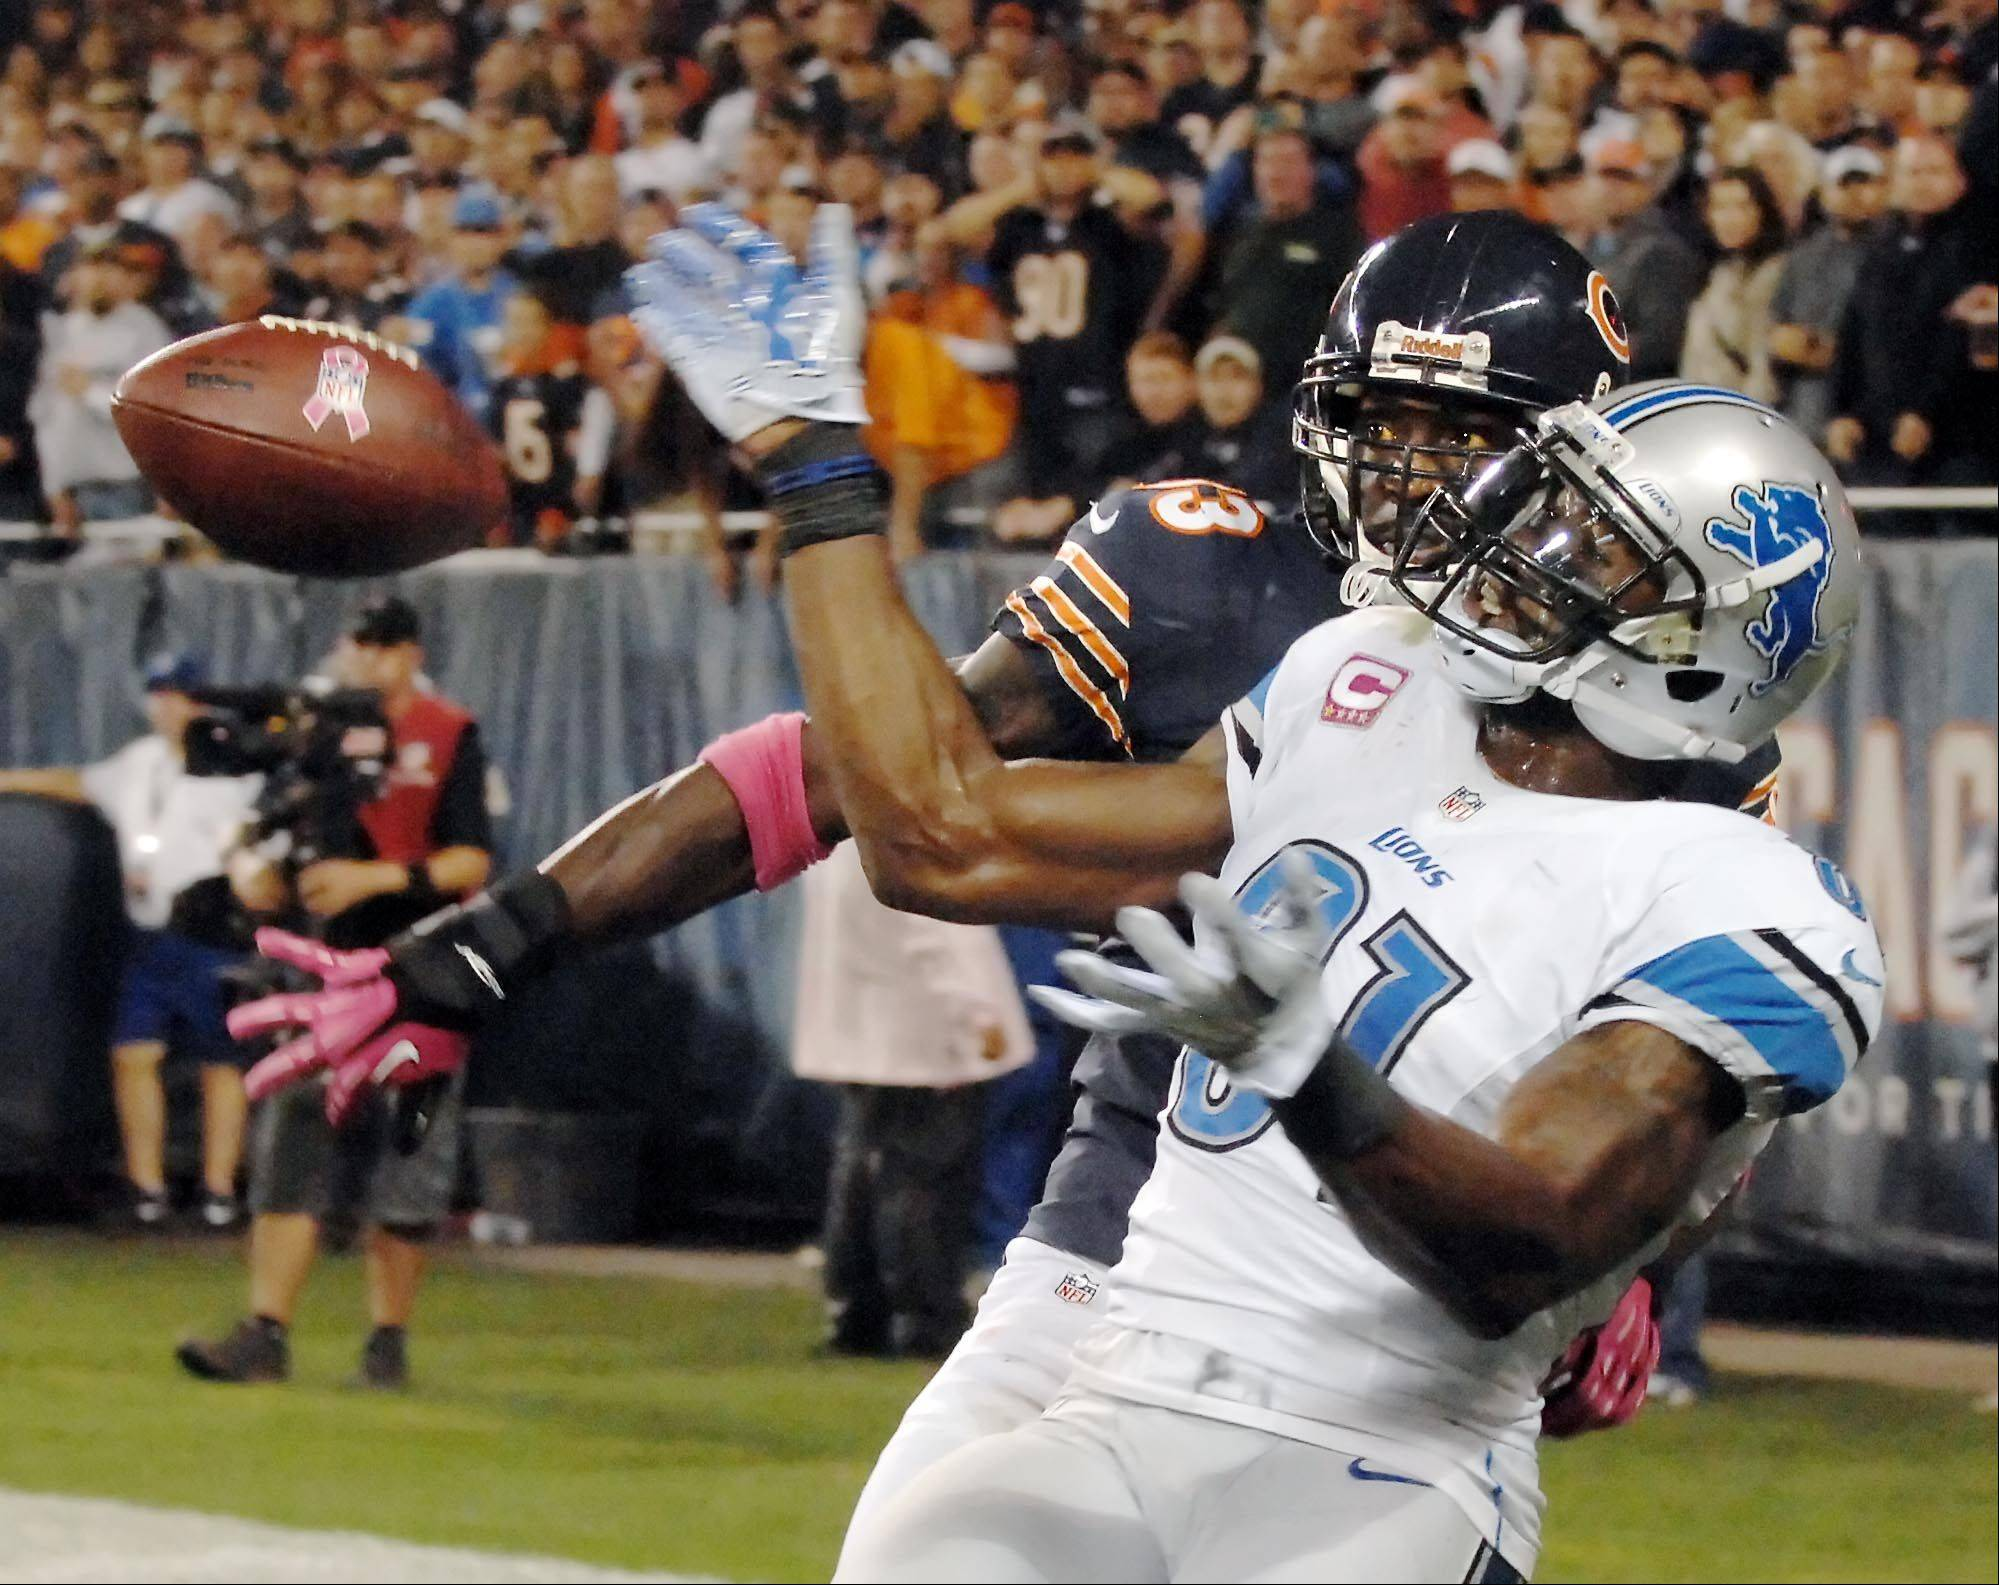 Chicago Bears cornerback Charles Tillman knocks the ball away form Detroit Lions wide receiver Calvin Johnson in the end zone late in the game.